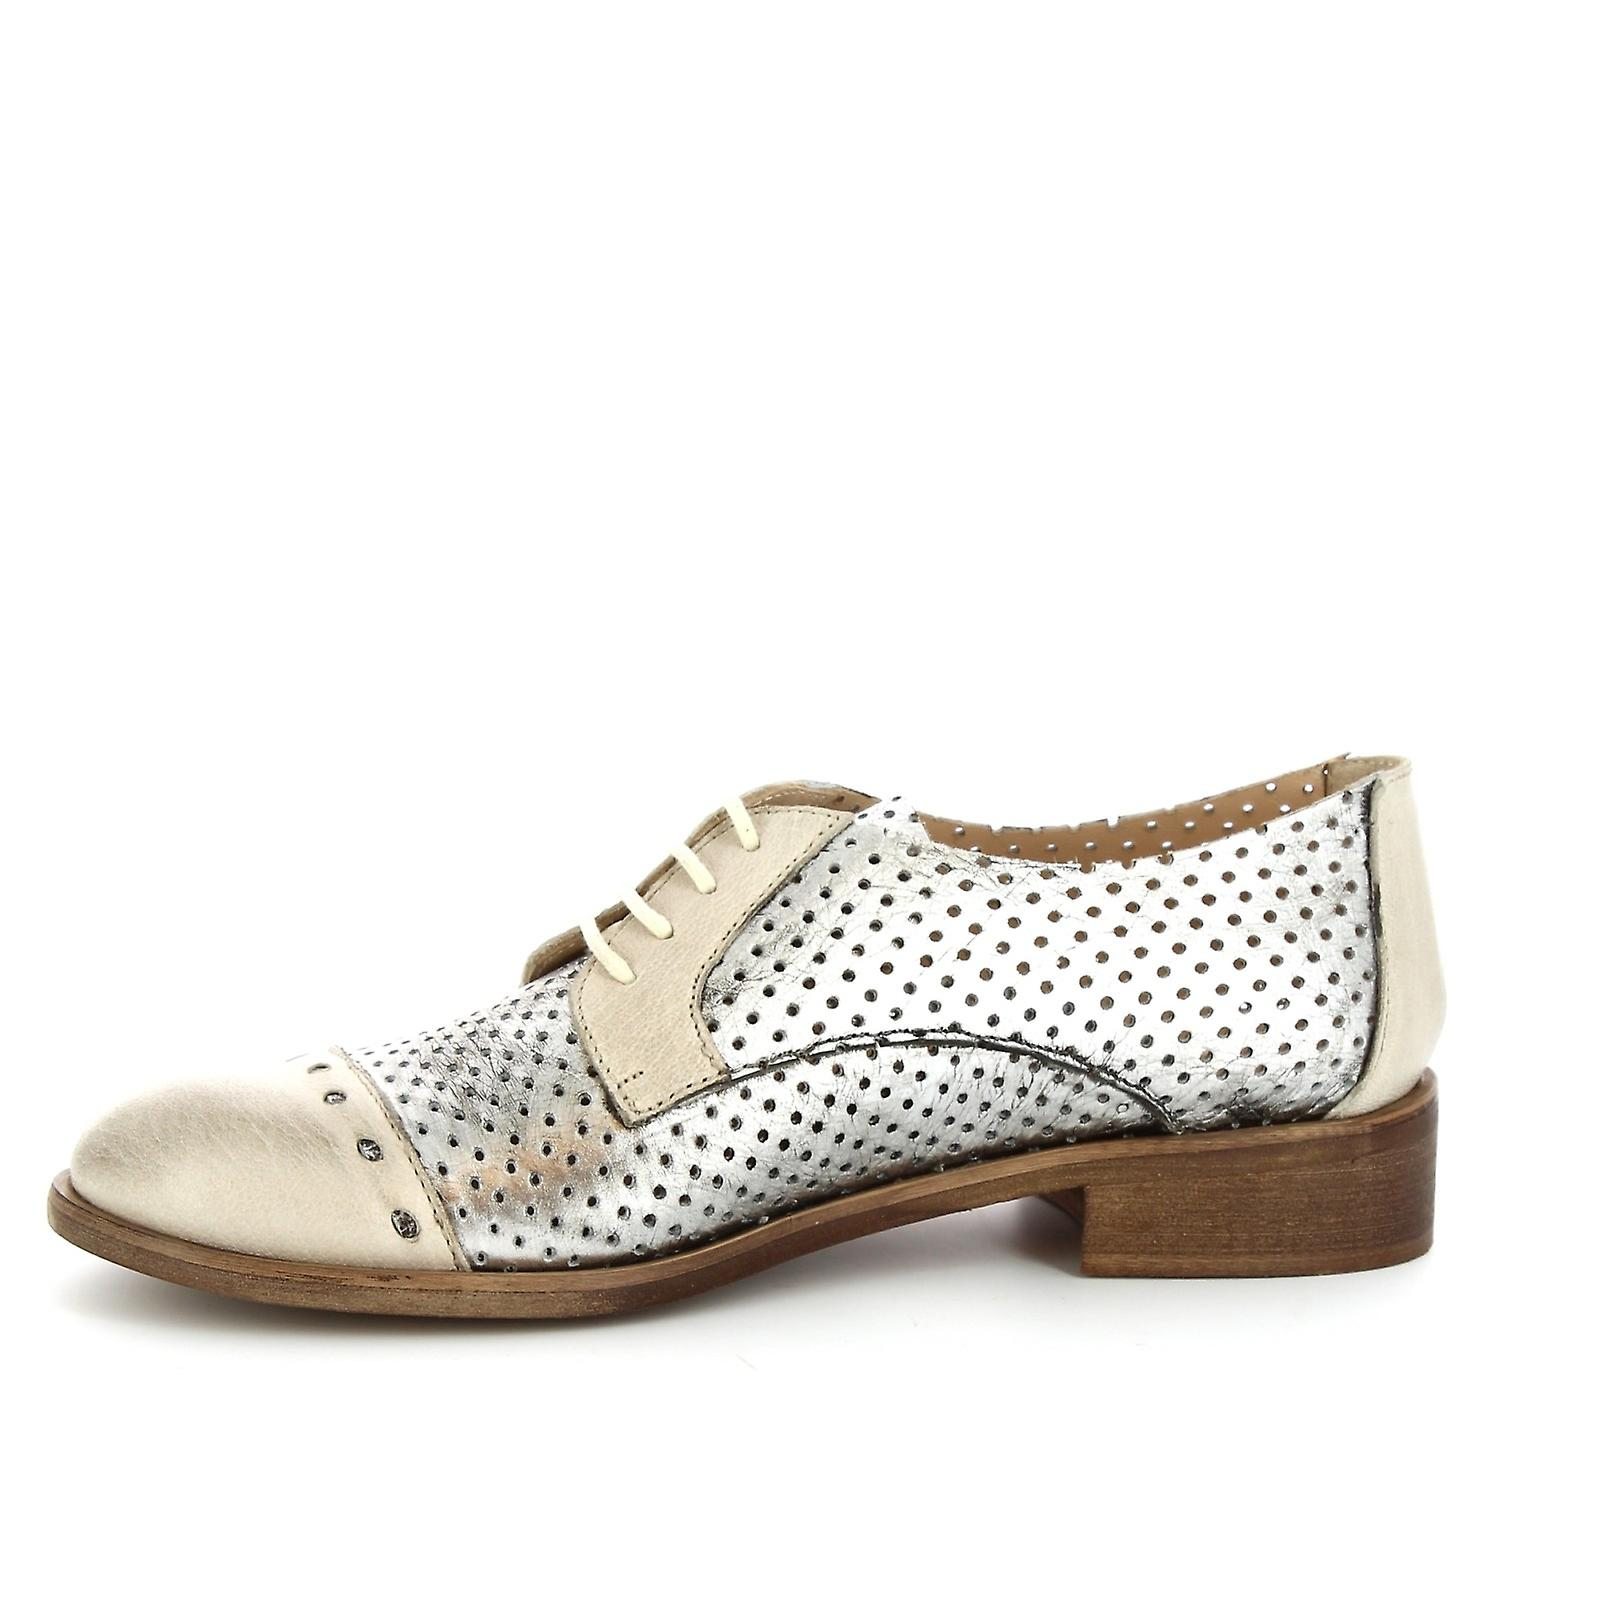 Leonardo Shoes Women's handmade oxford shoes in silver openwork calf leather